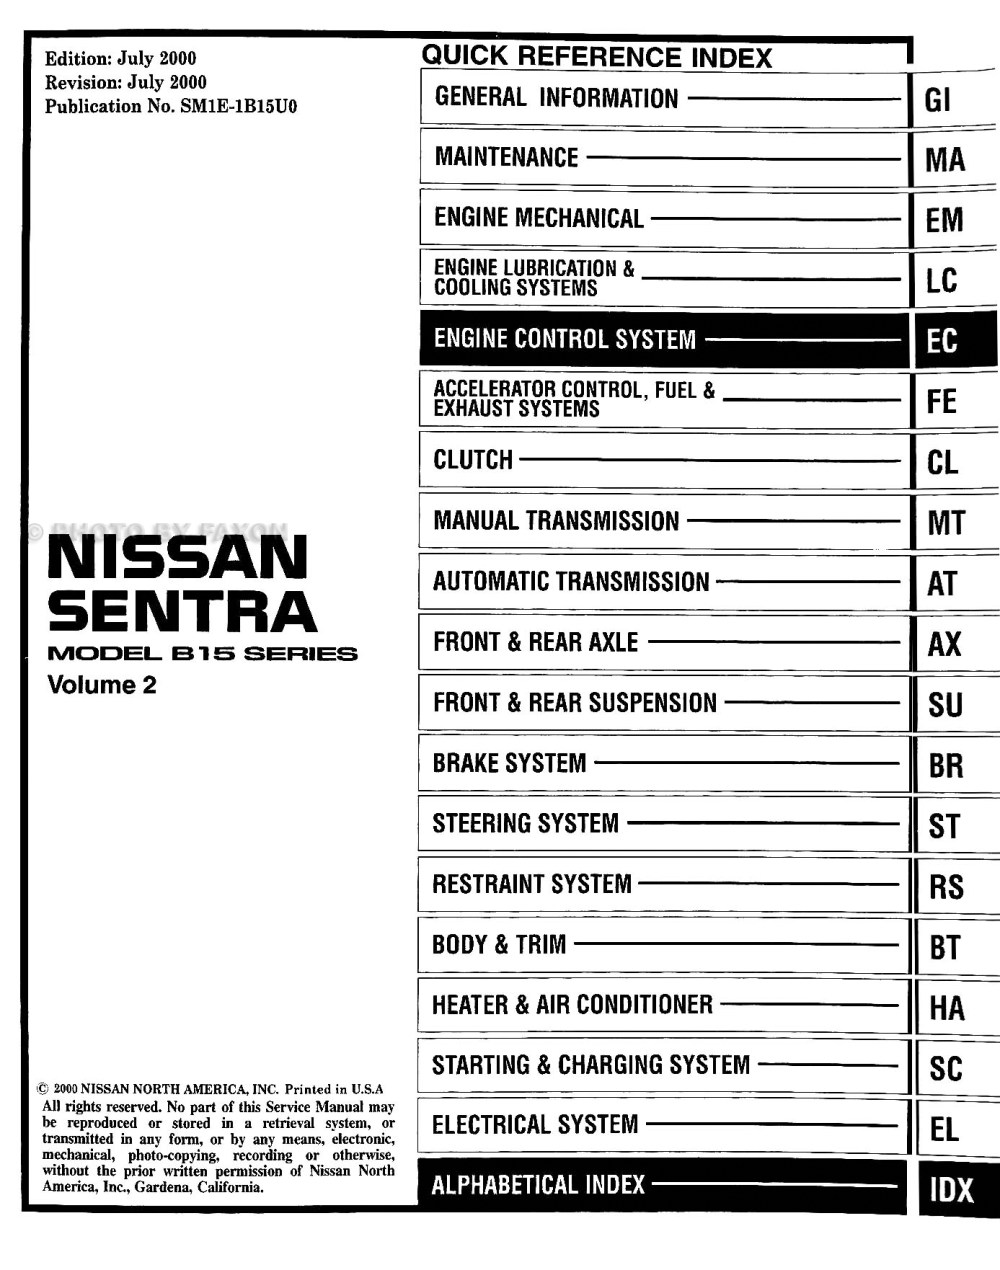 medium resolution of 1994 nissan sentra fuse box wiring diagram source 92 nissan sentra fuse box location 2013 nissan